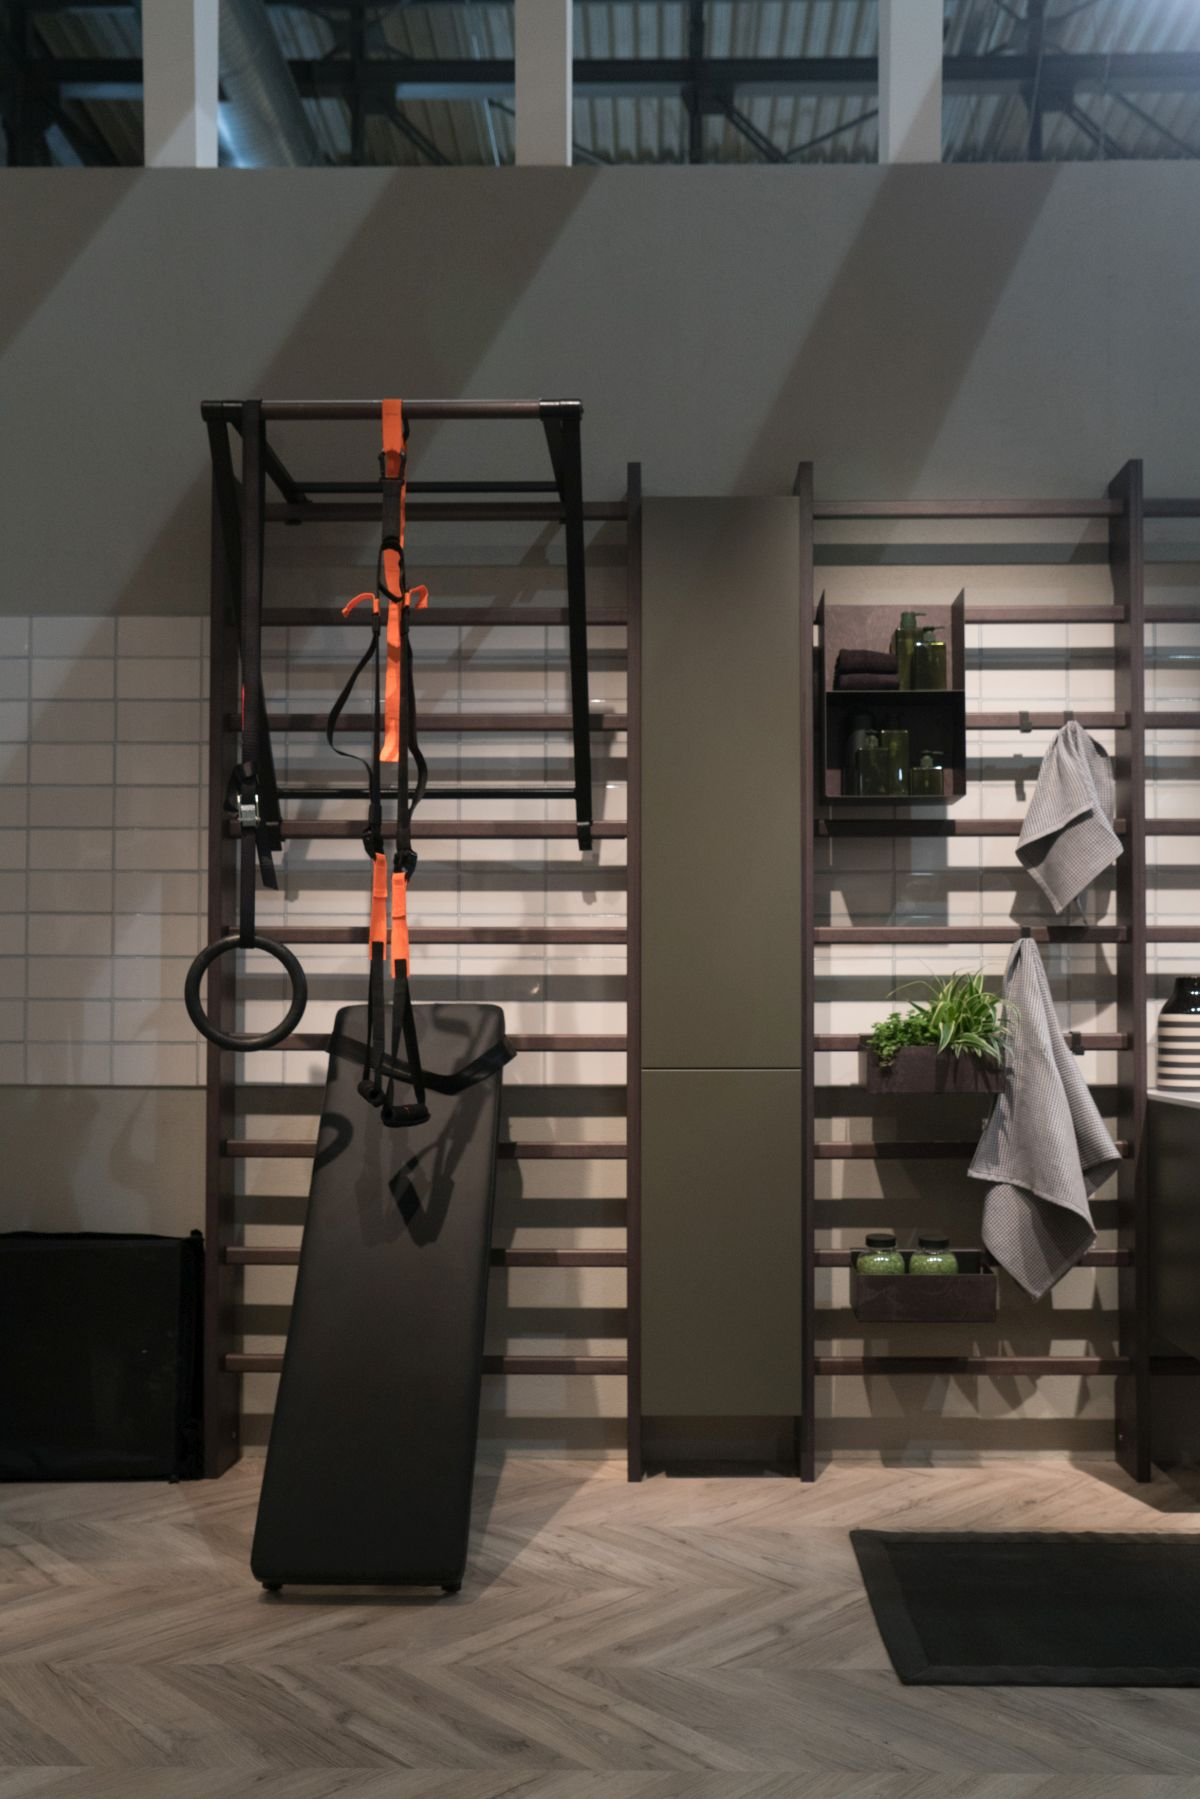 This unusual combo of functions and features allows homeowners to welcomes the ideas of wellness into their everyday lives